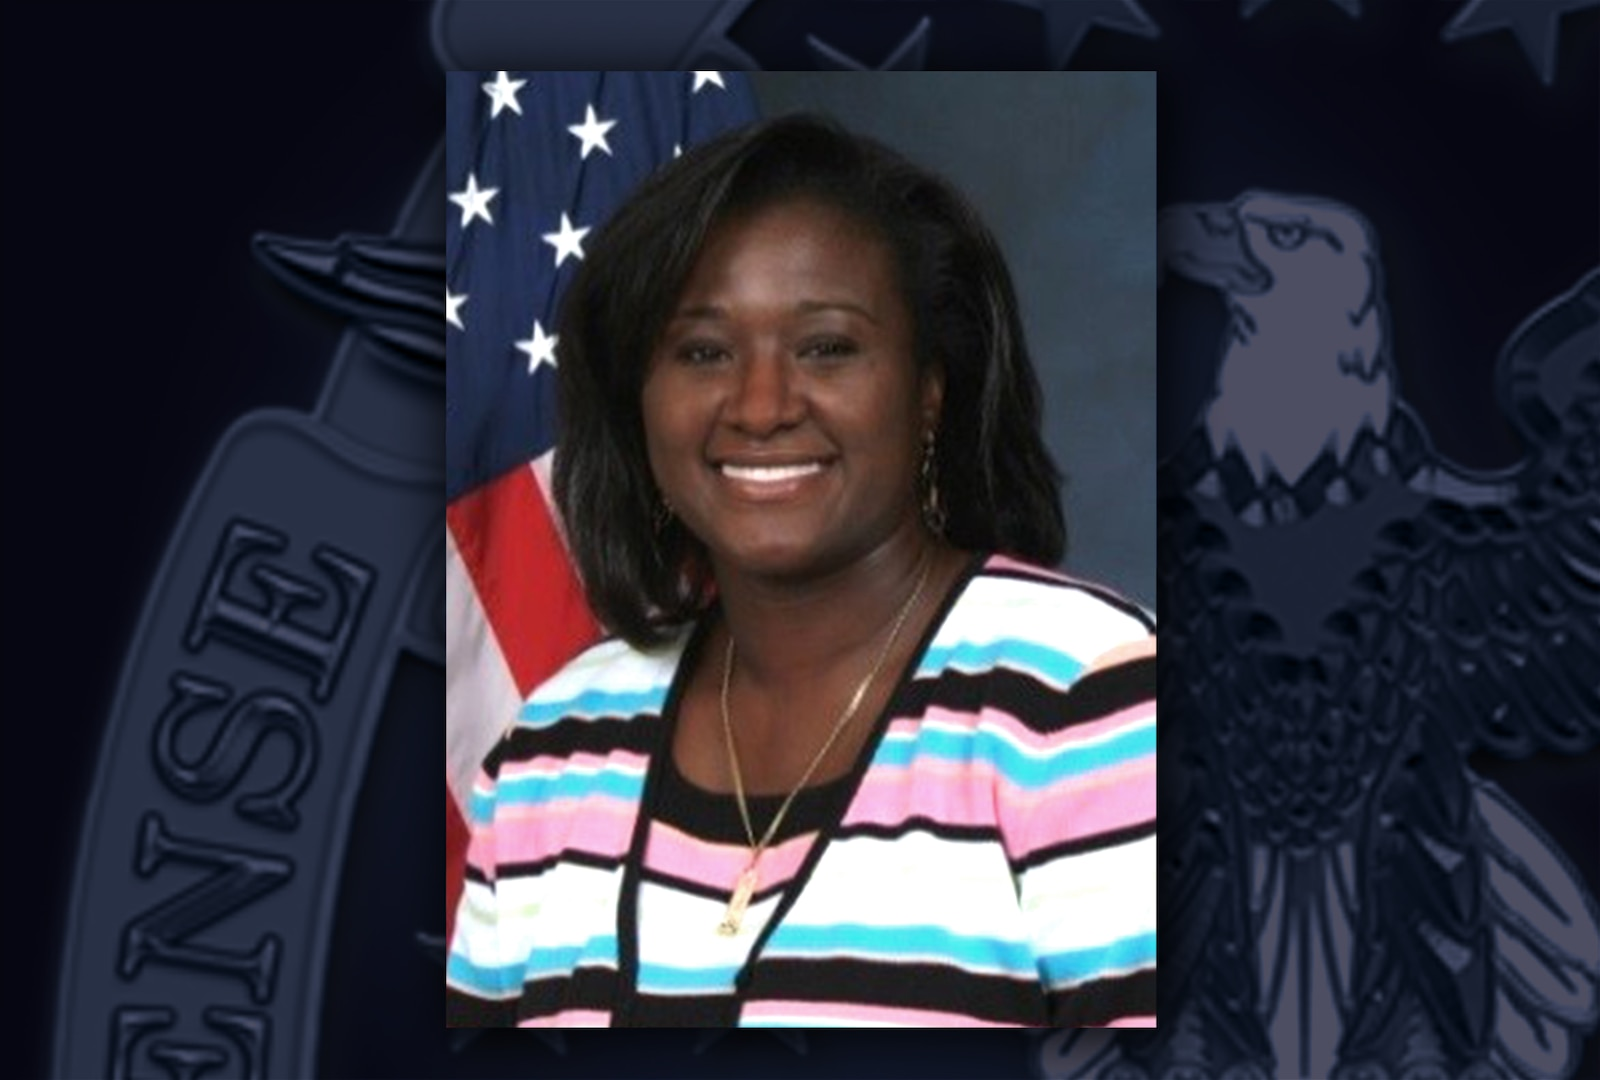 Head and shoulders image of a black woman wearing a black, white, pink and blue striped sweater posing in front of the US flag.